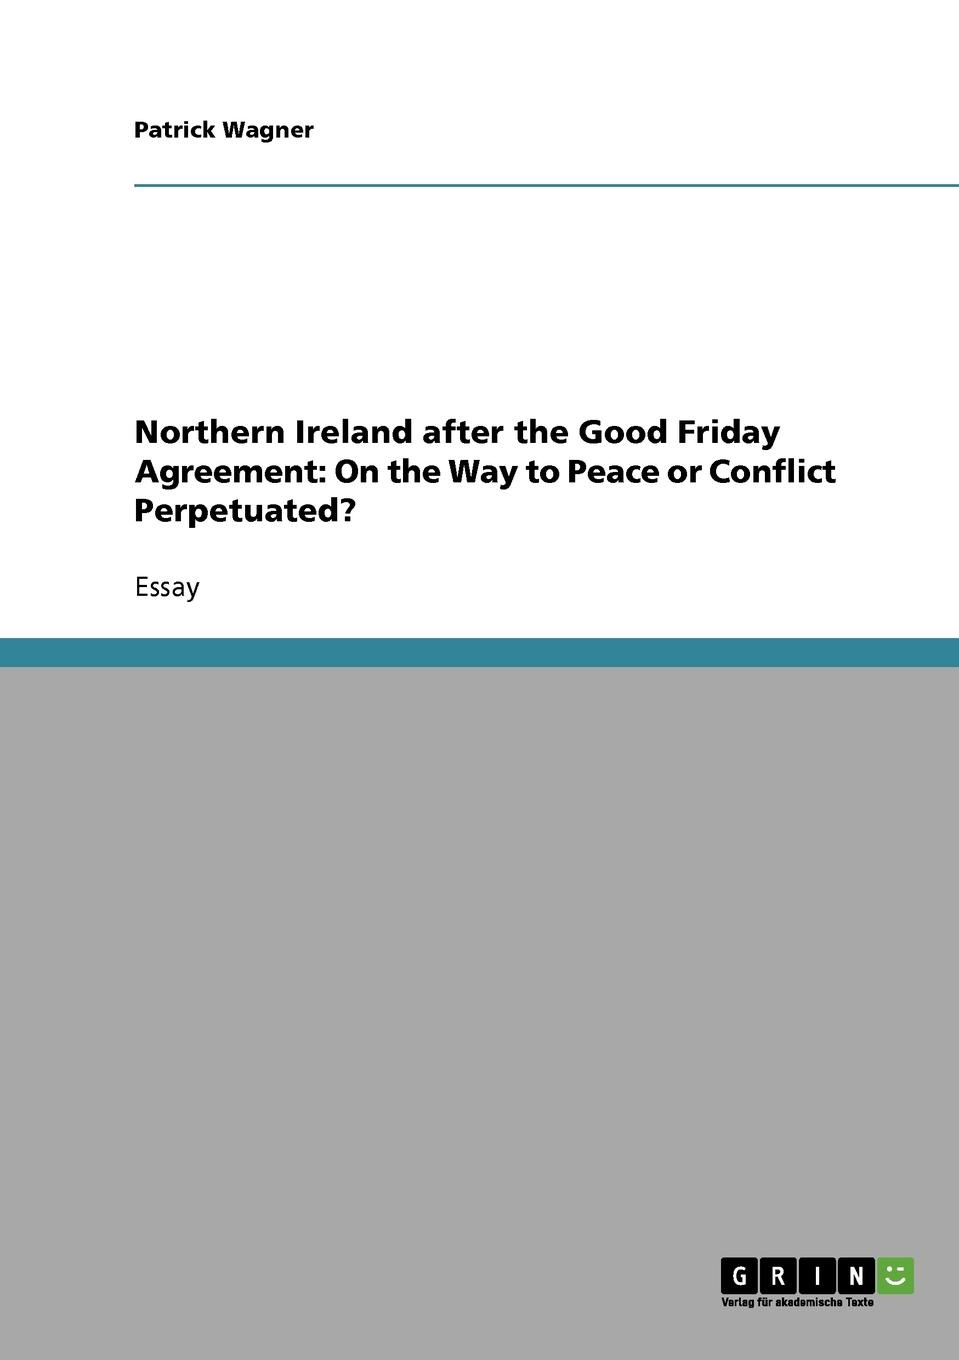 Patrick Wagner Northern Ireland after the Good Friday Agreement. On the Way to Peace or Conflict Perpetuated. isda master agreement